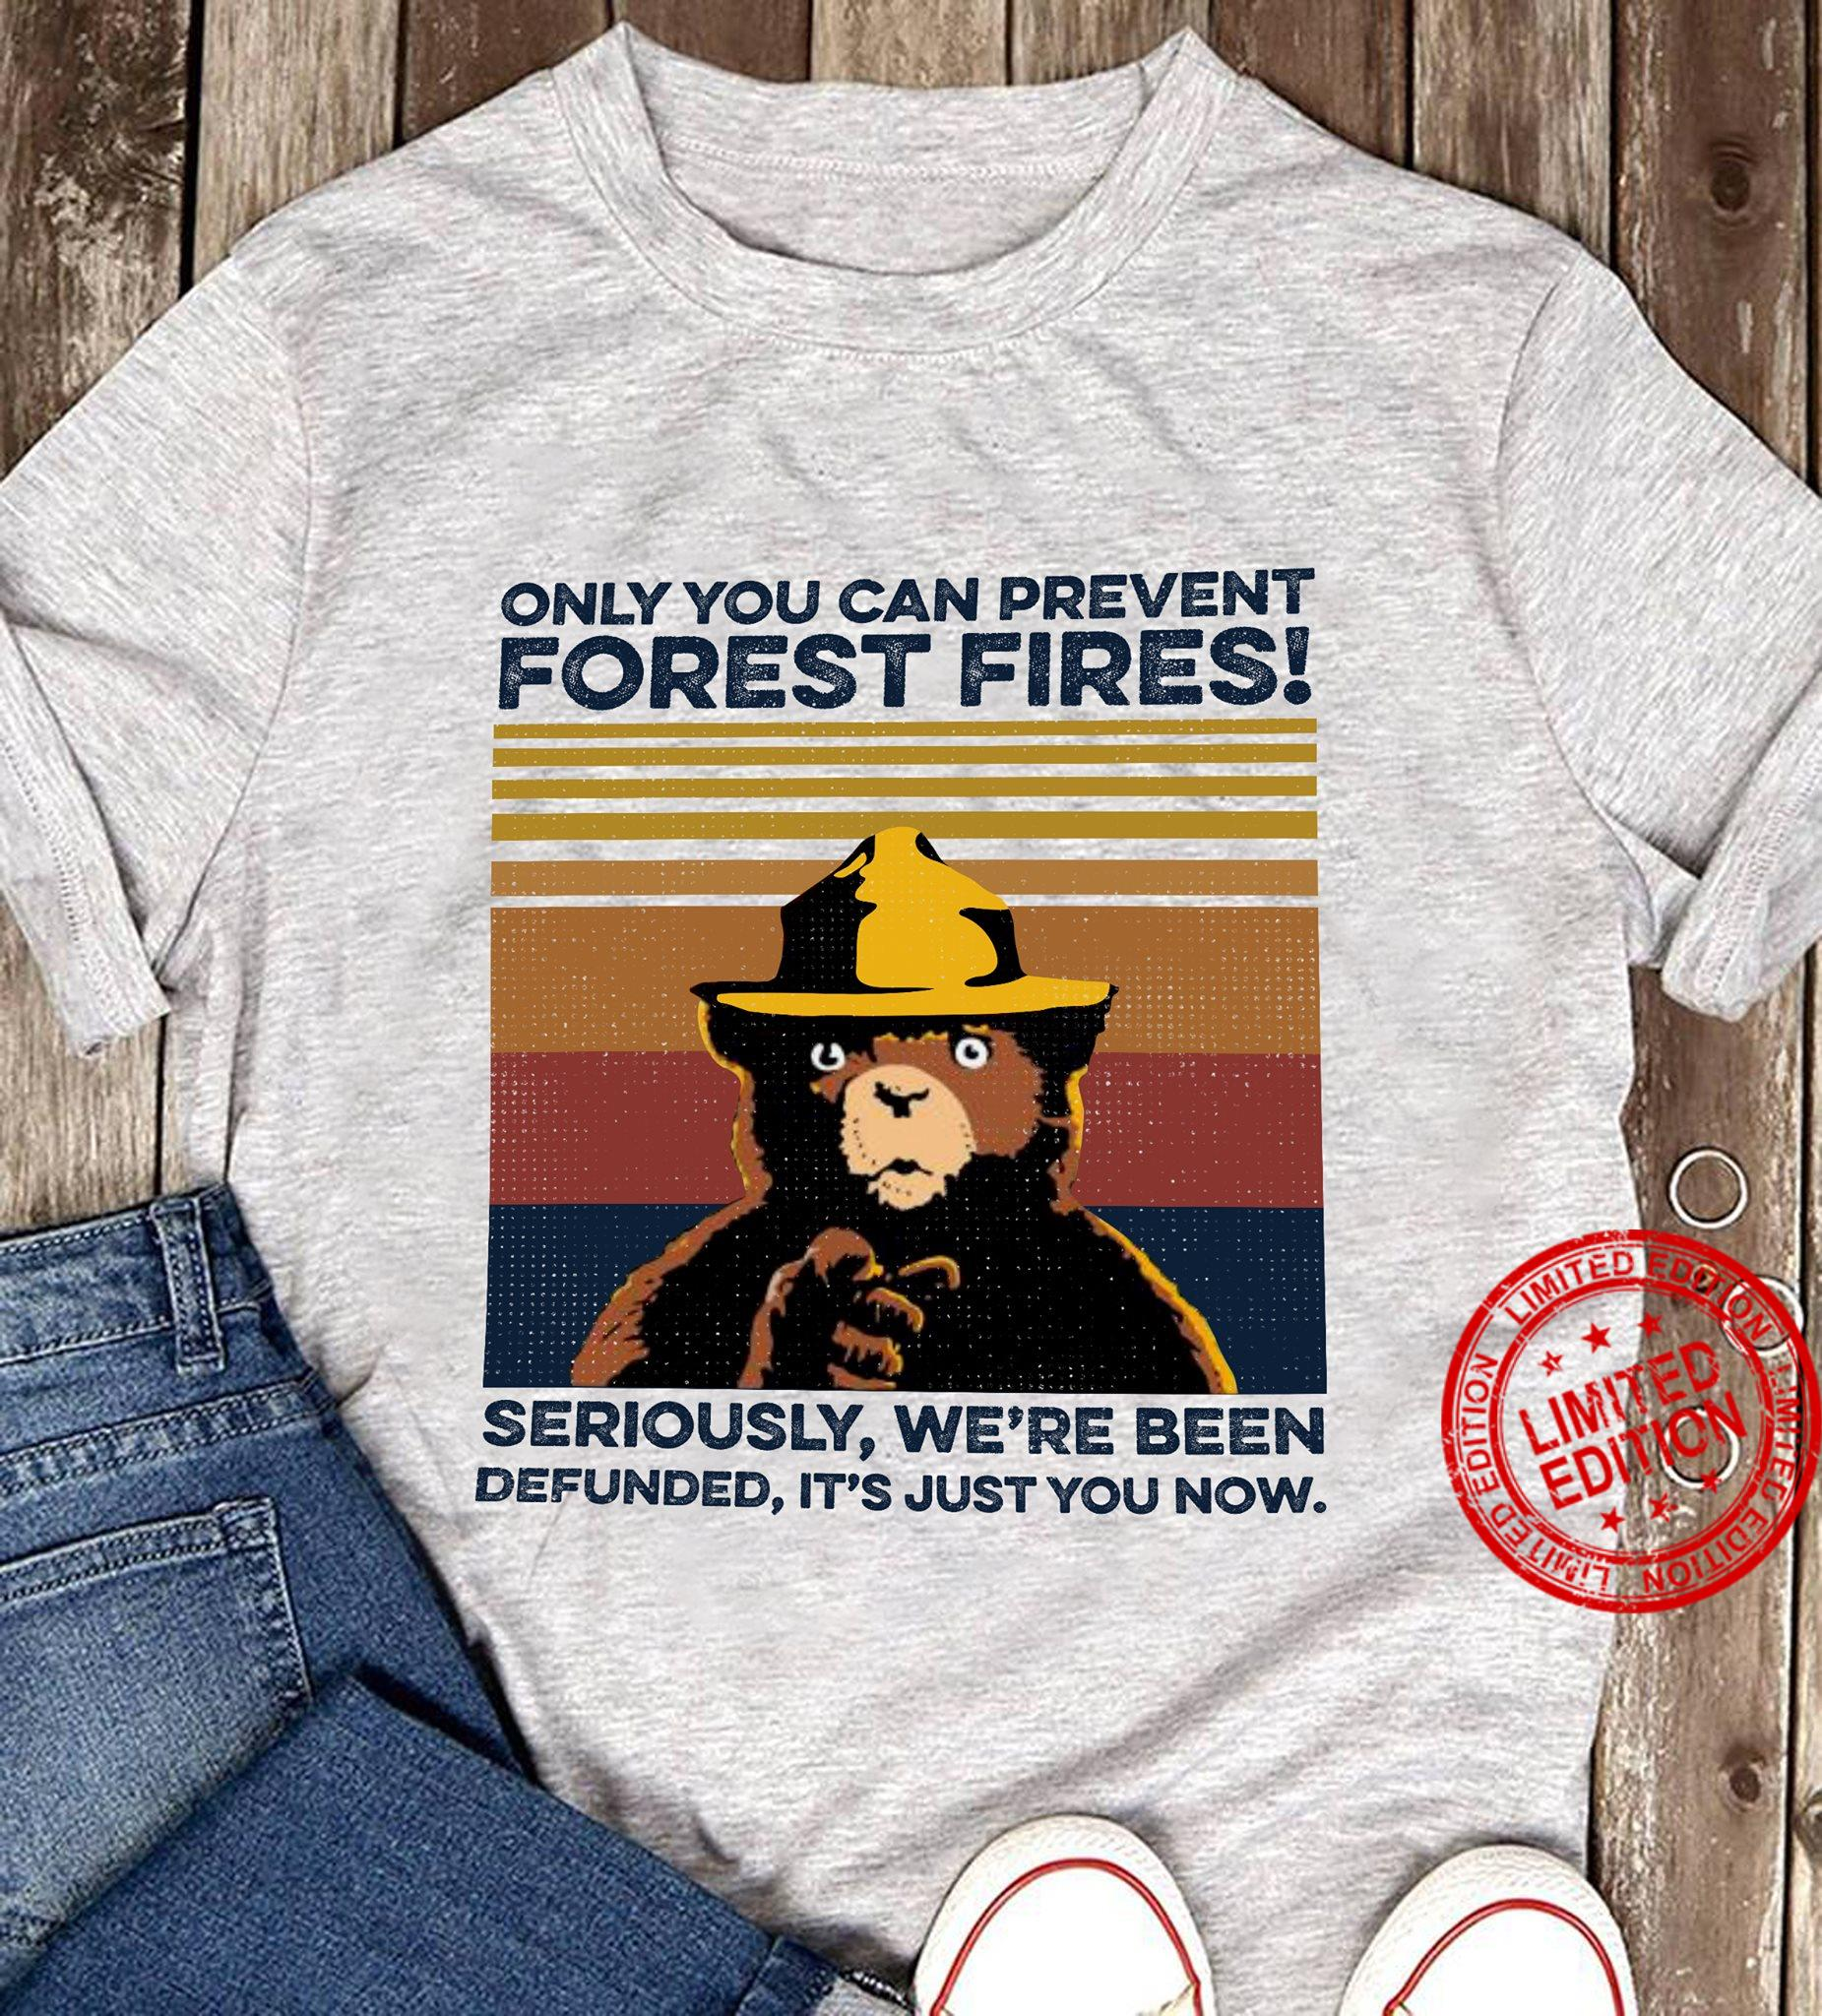 Only You Can Prevent Forest Fires SEriously We're Been Defunned It's Just You Now Shirt